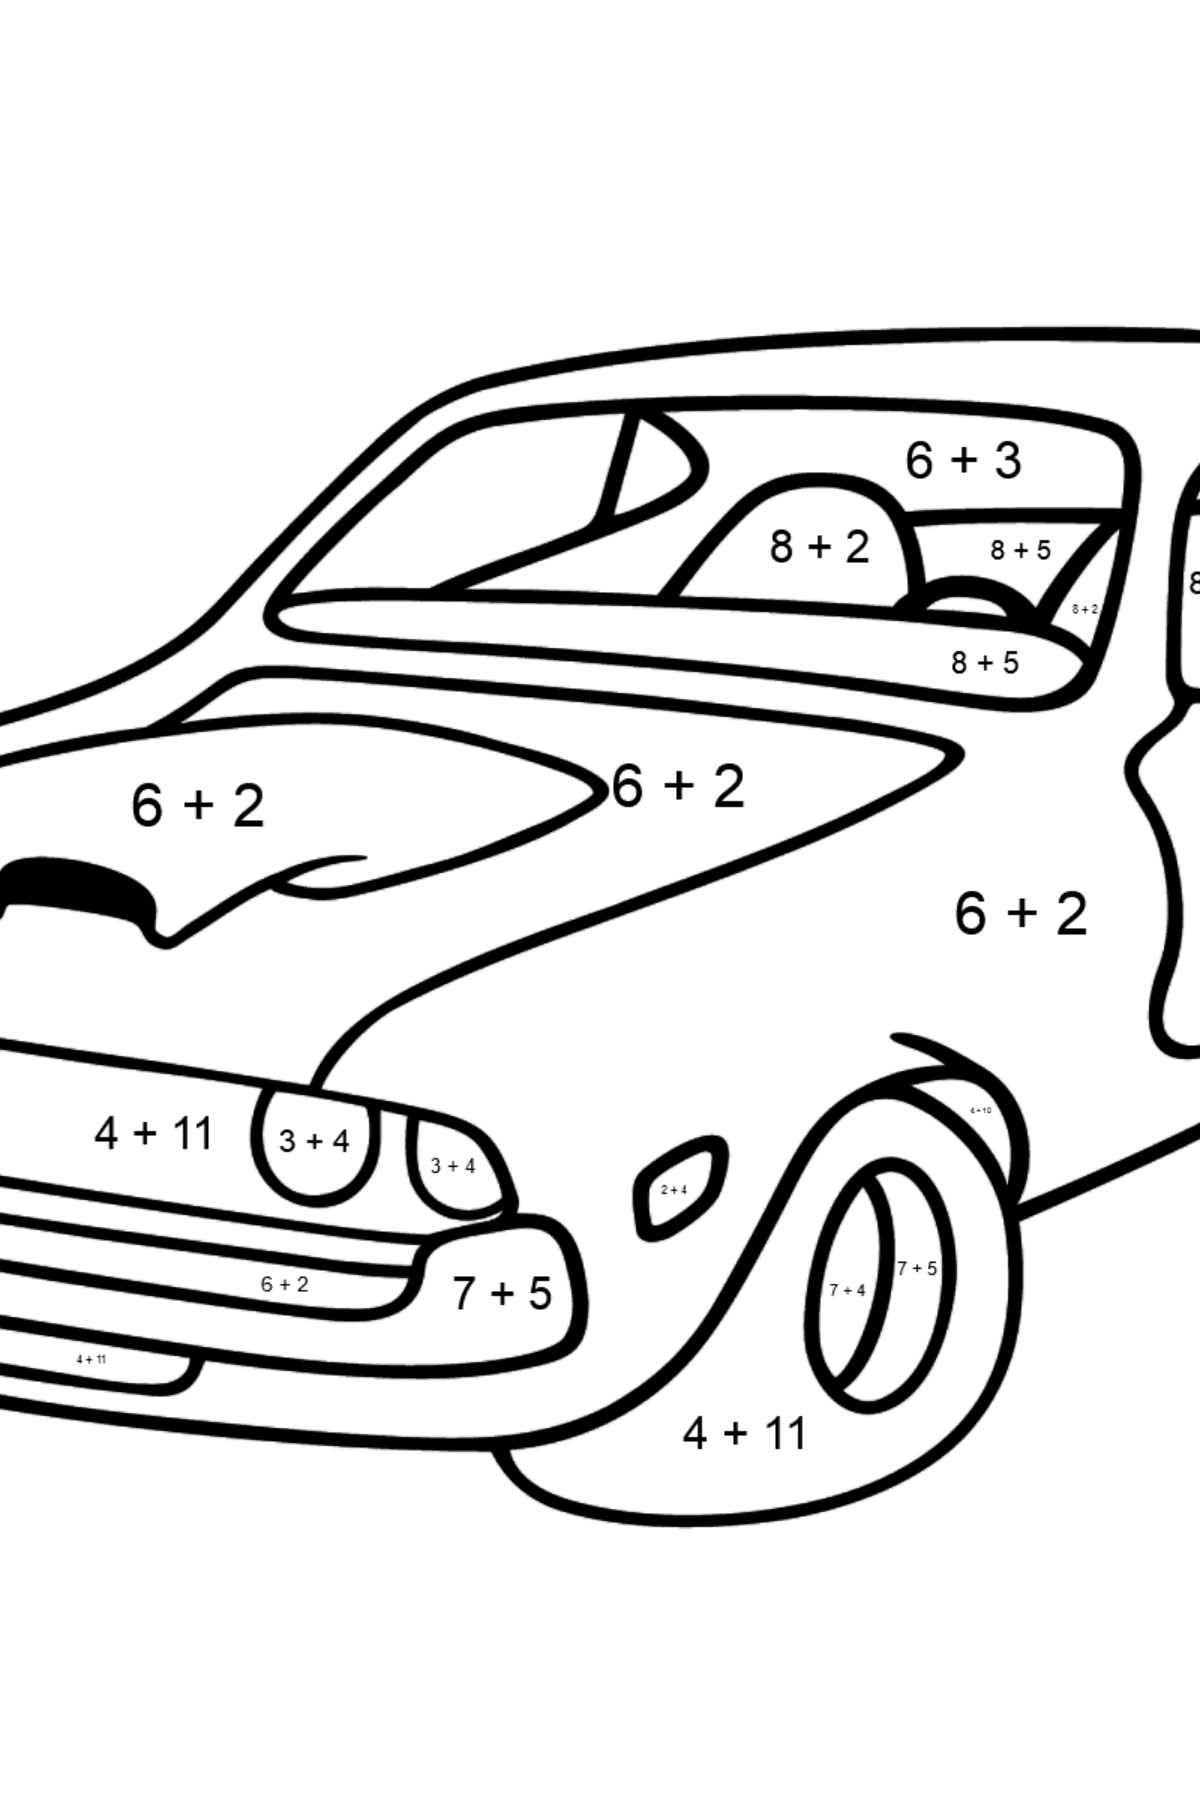 Chevrolet-Chevy Sports Car coloring page - Math Coloring - Addition for Kids